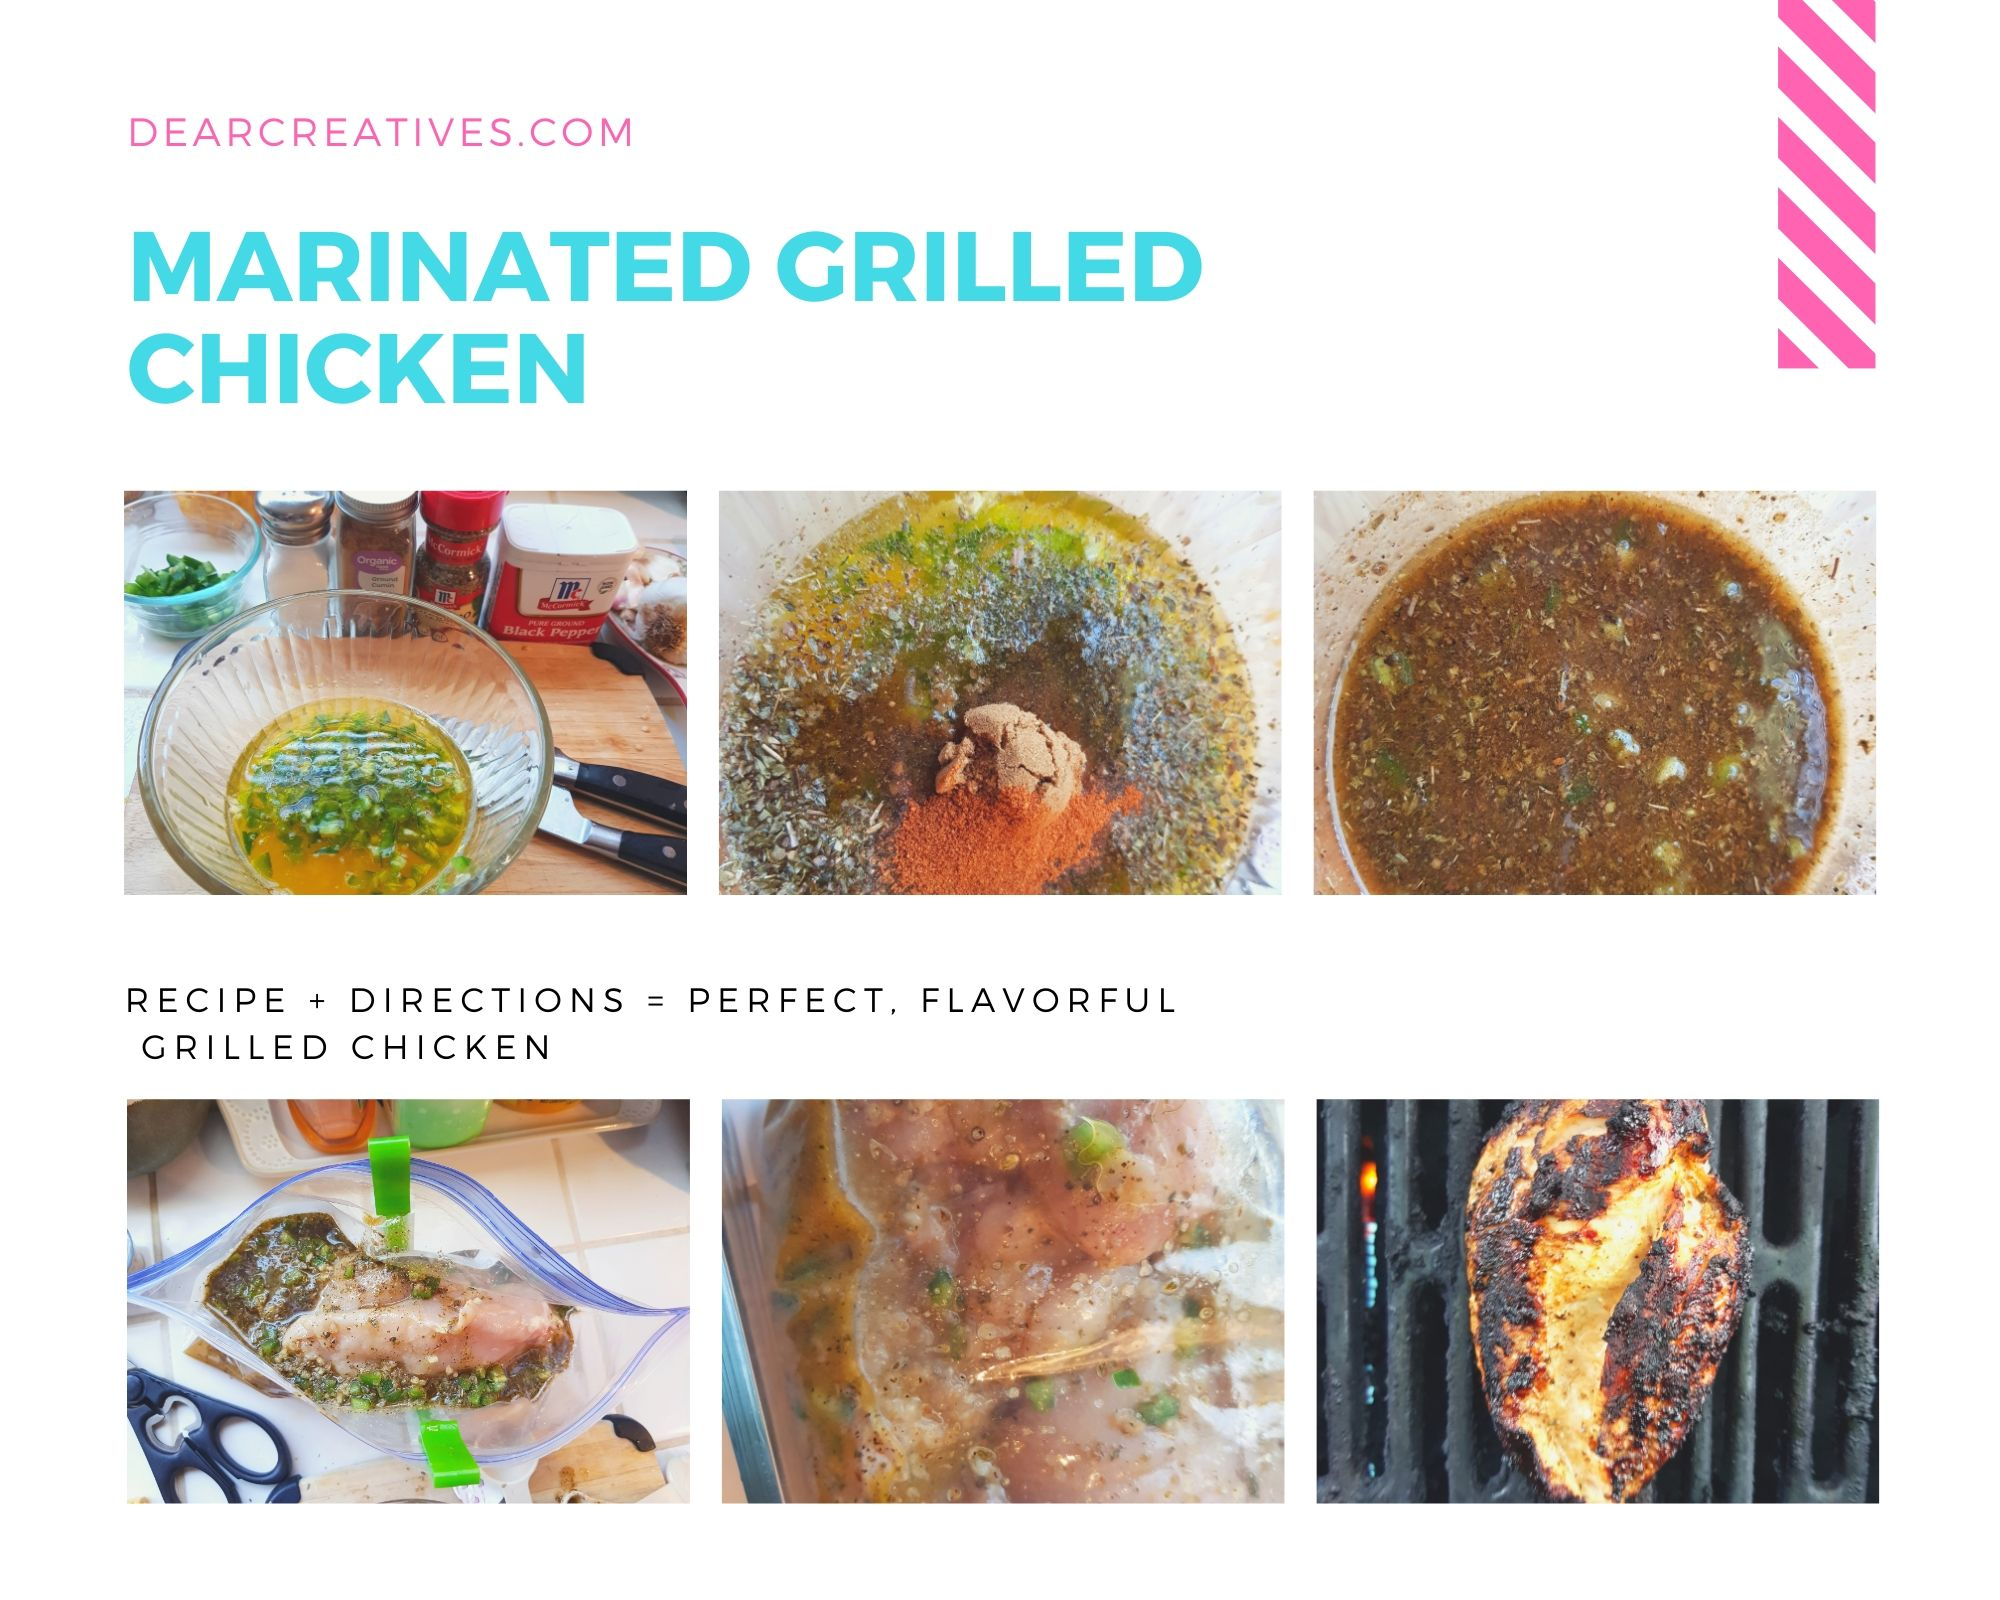 MARINATED GRILLED CHICKEN = Recipe plus instructions = Easy to make ahead of time, marinate and grill the chicken. DearCreatives.com